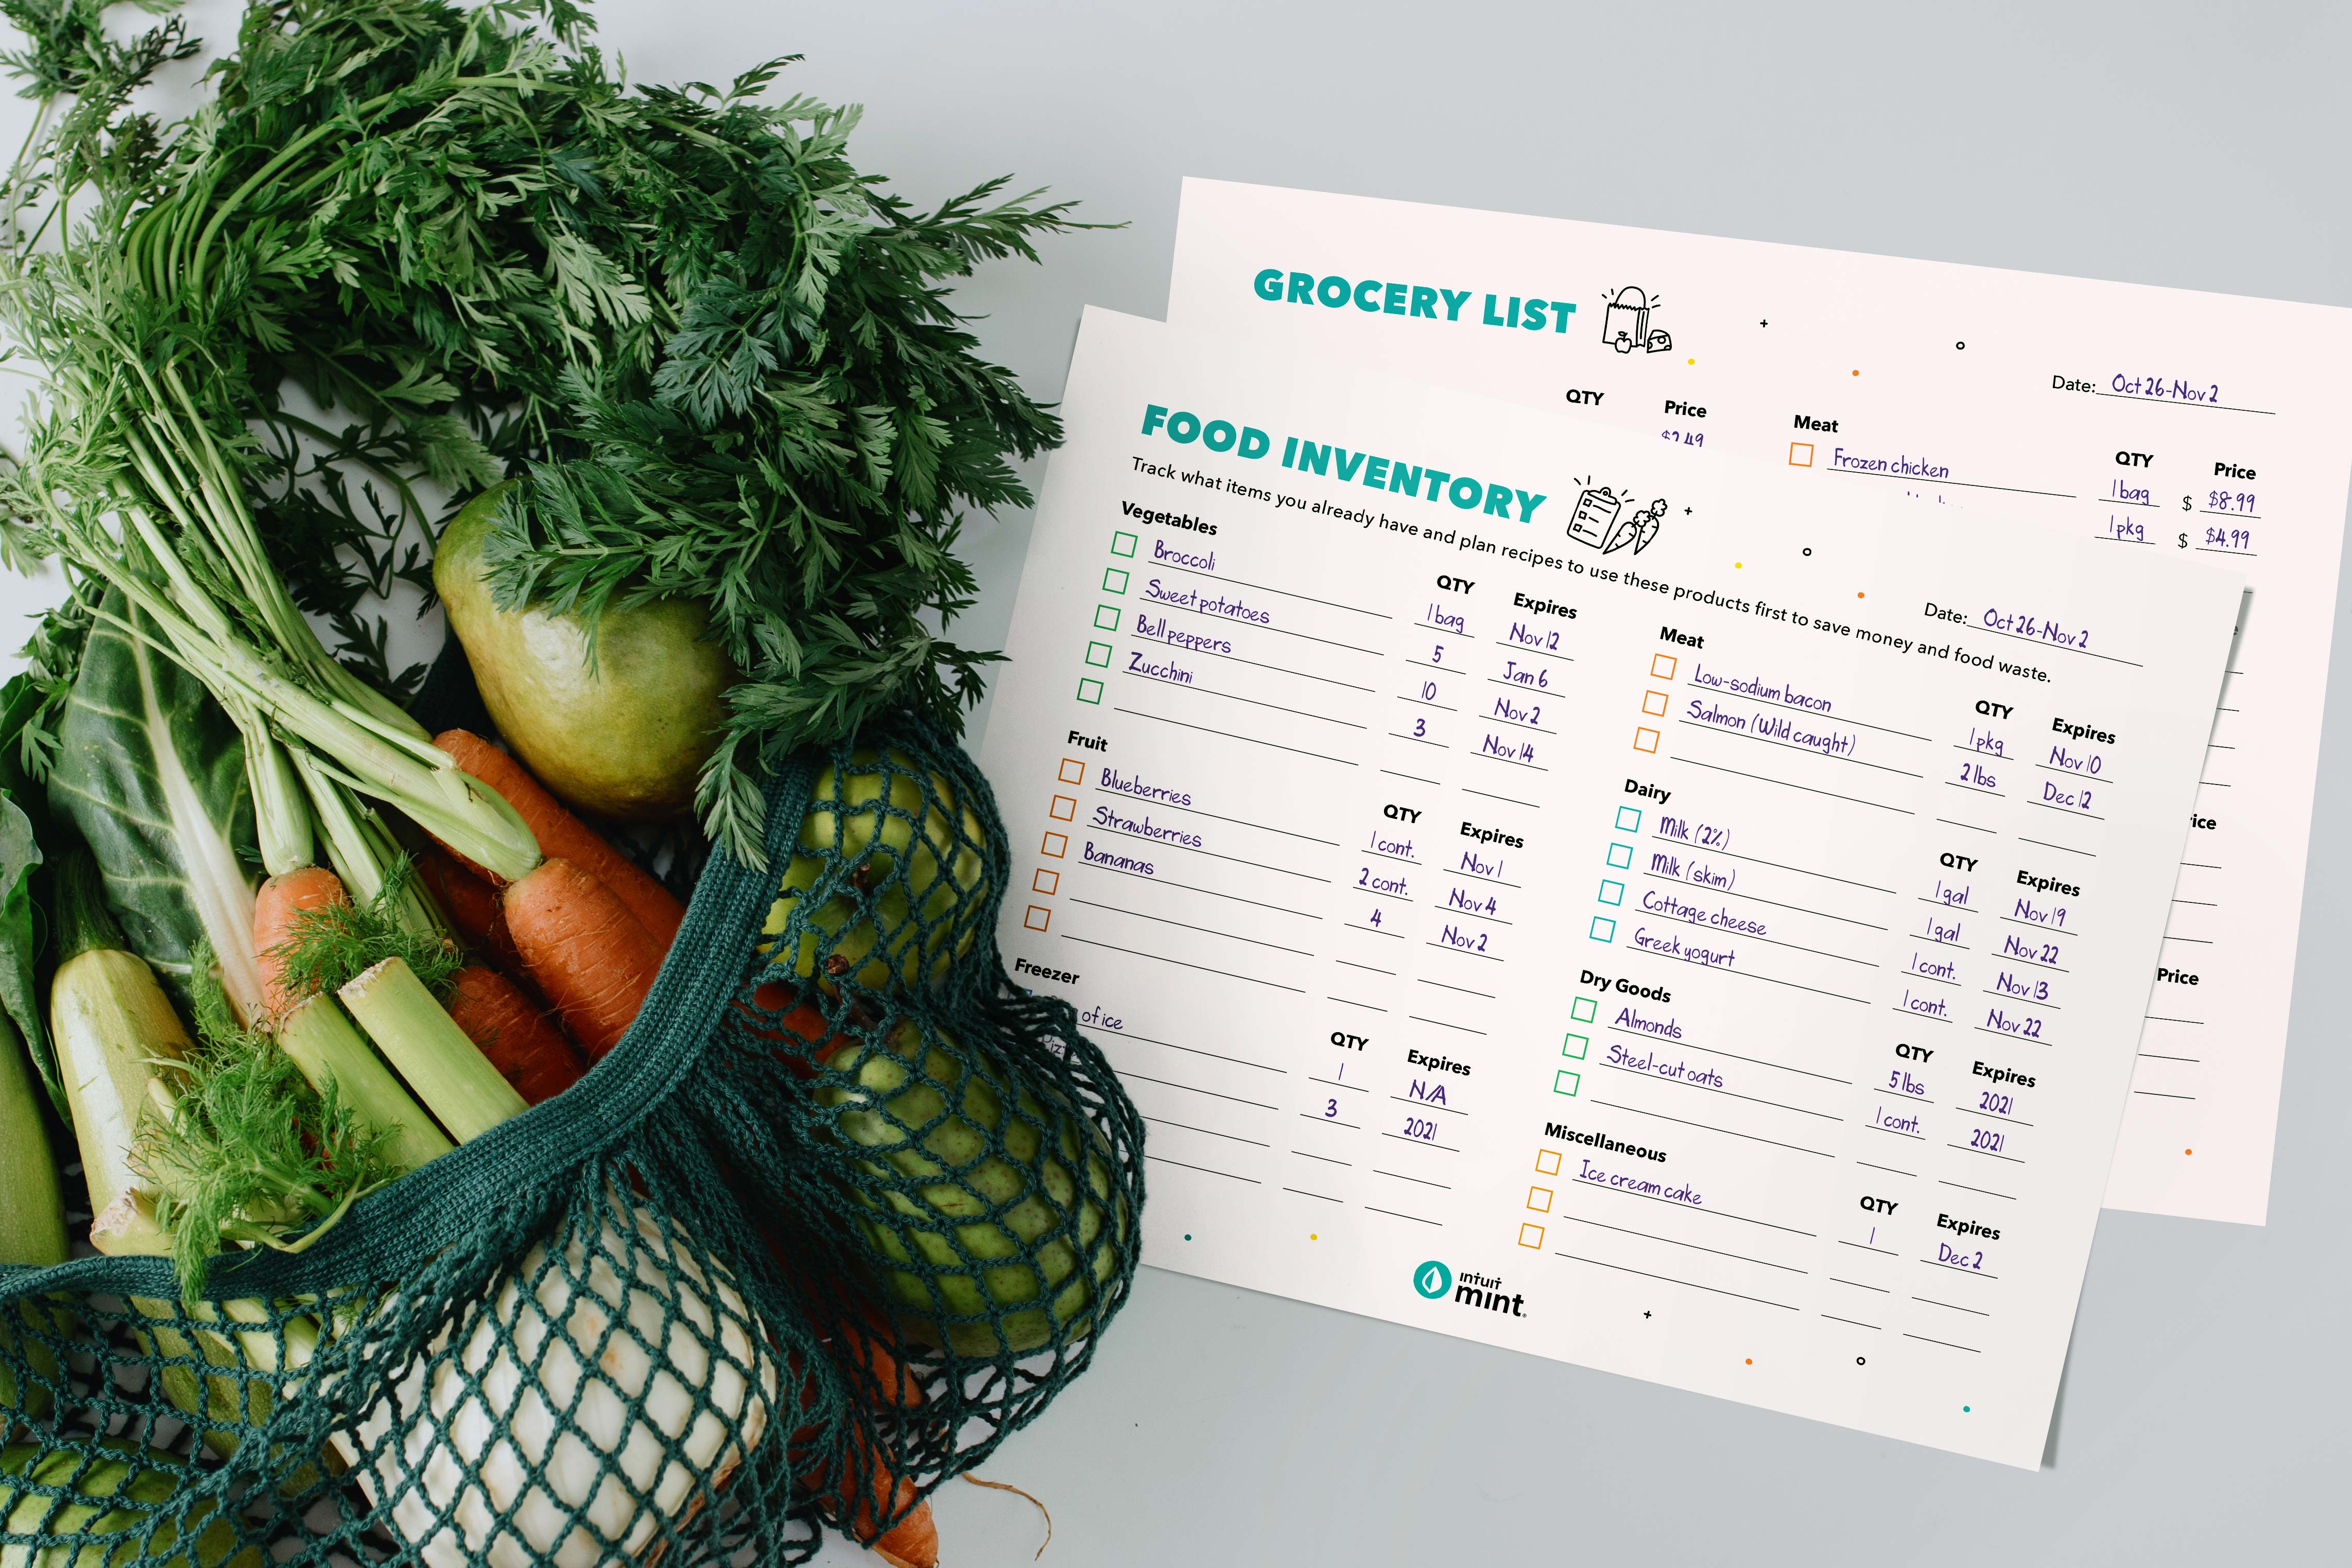 Mockup of grocery list and food inventory printables with fresh produce